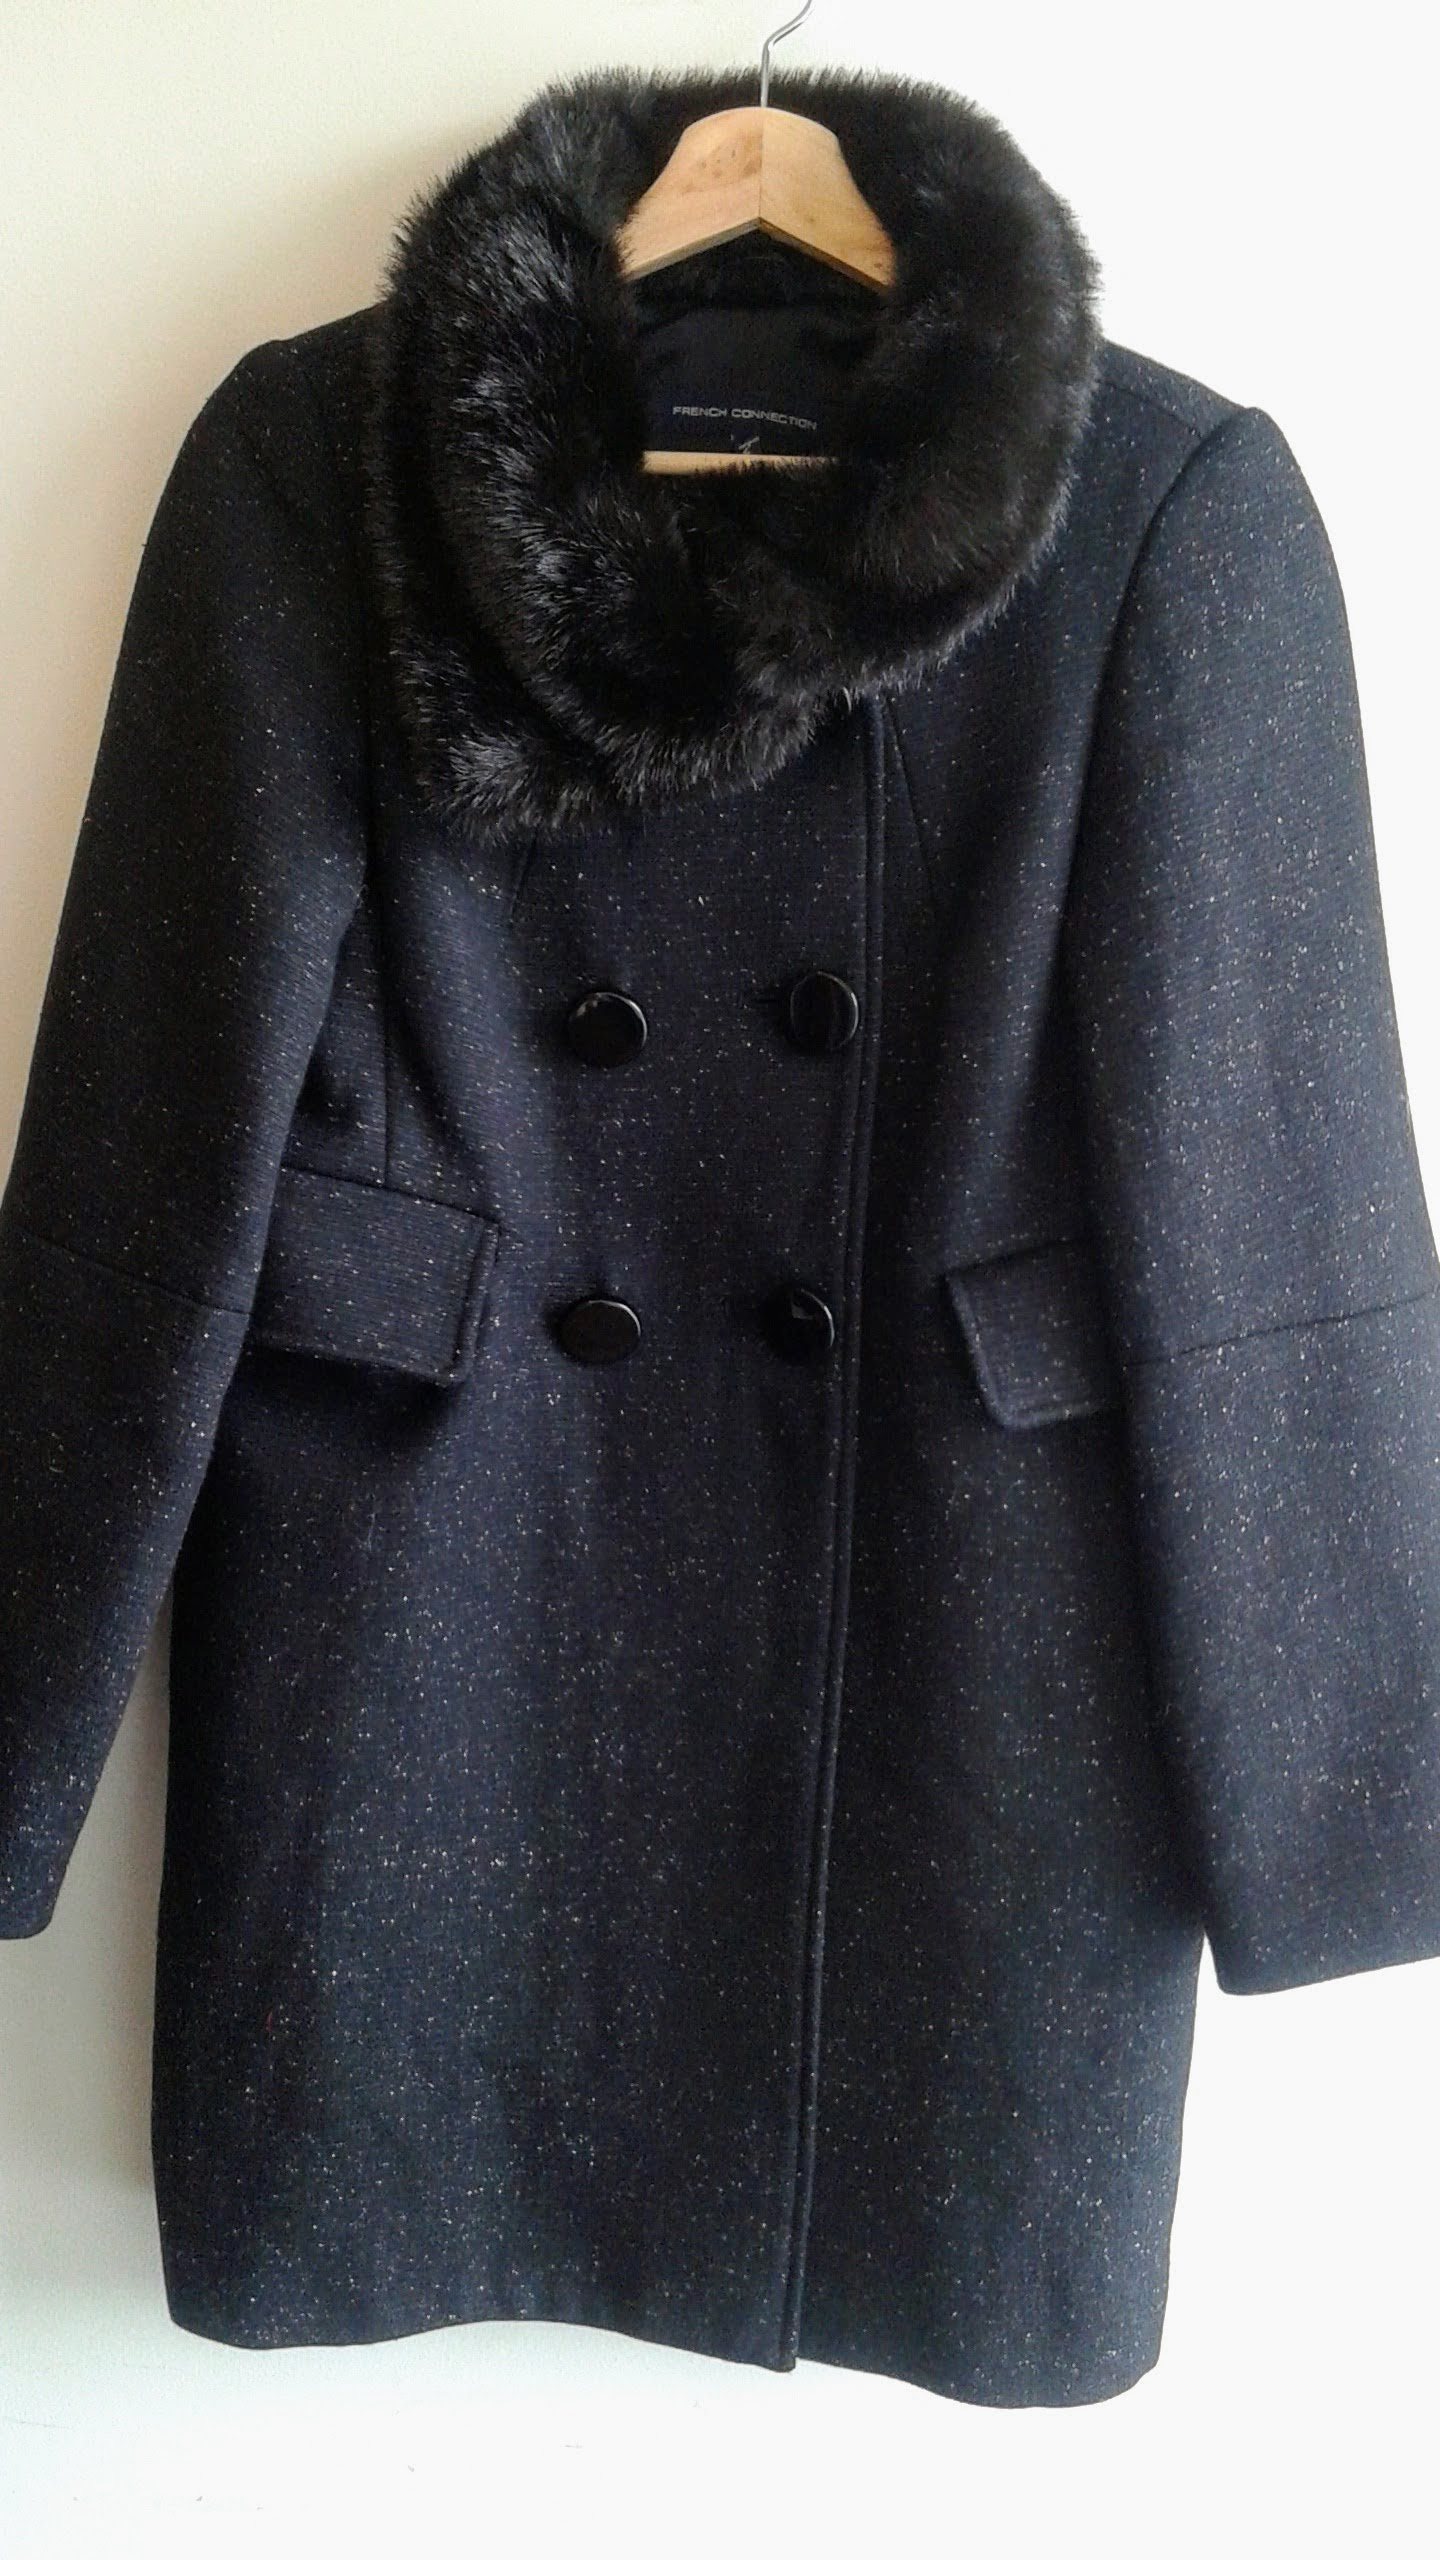 French Connection coat; Size 4, $68